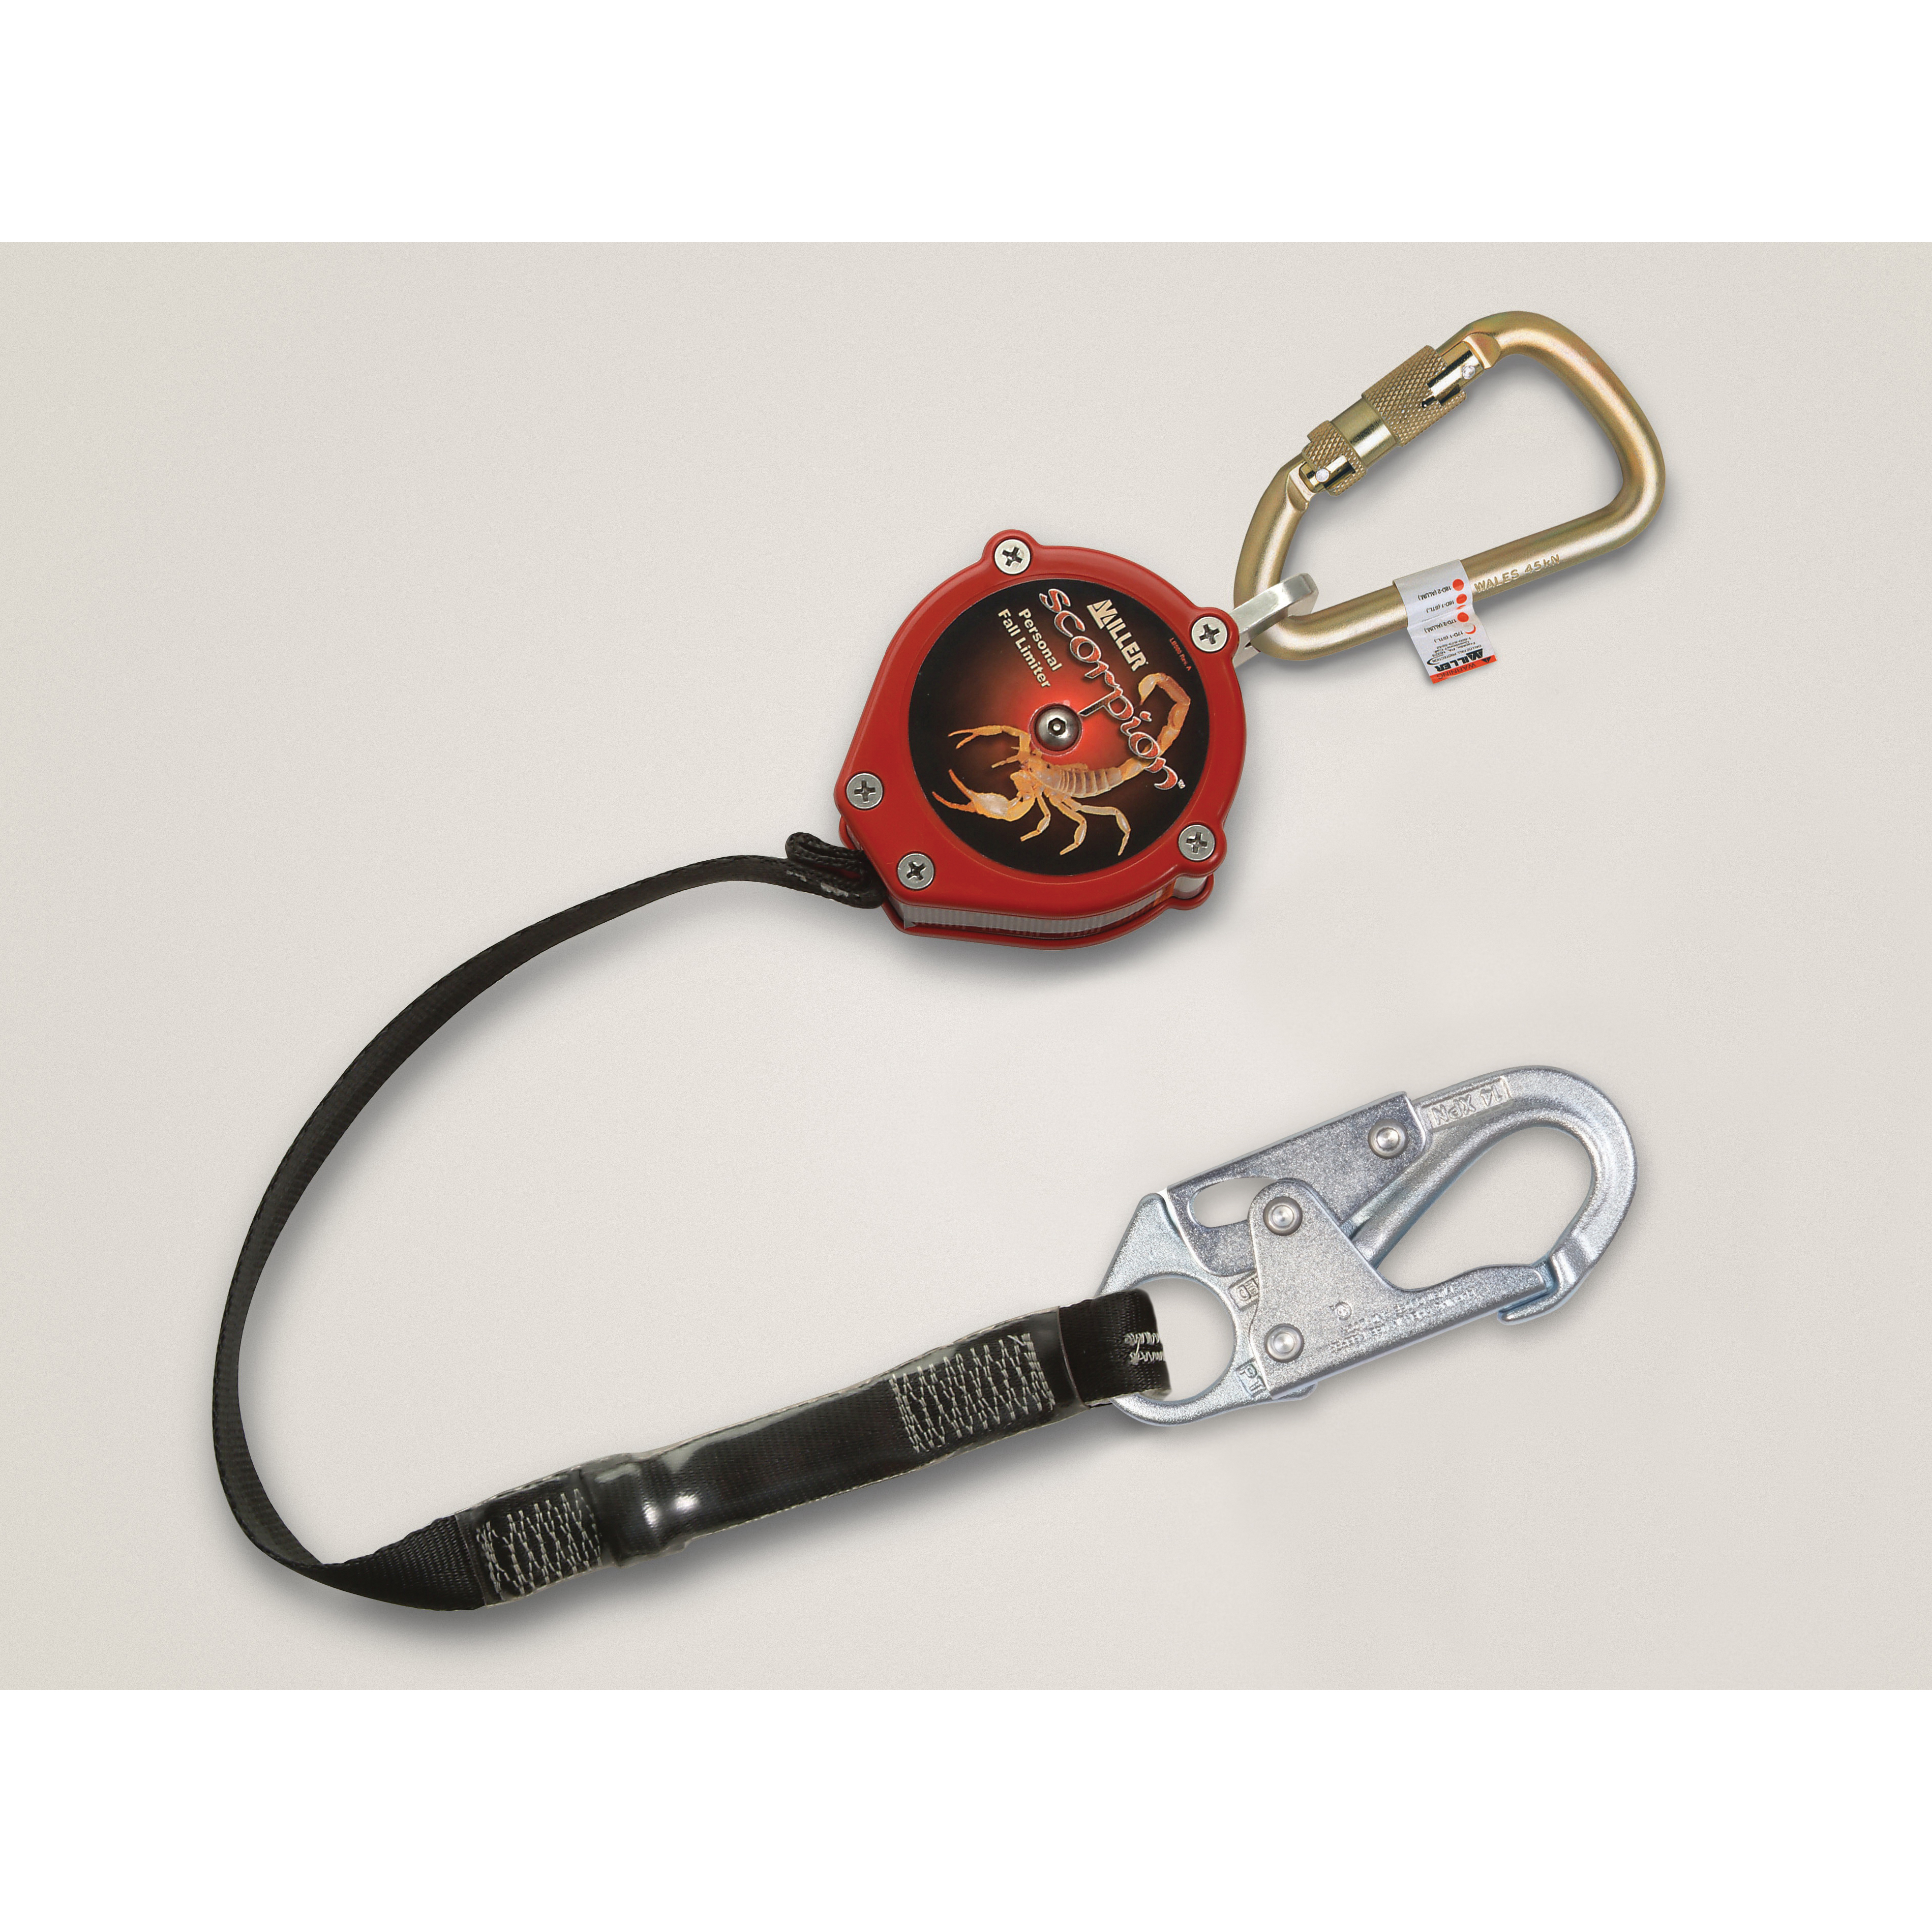 Miller® by Honeywell PFL-2-Z7/9FT Scorpion™ Self-Retracting Personal Fall Limiter With Twist-Lock Carabiner and Locking Snap Hook, 310 lb Load Capacity, 9 ft L, Specifications Met: ANSI Z359